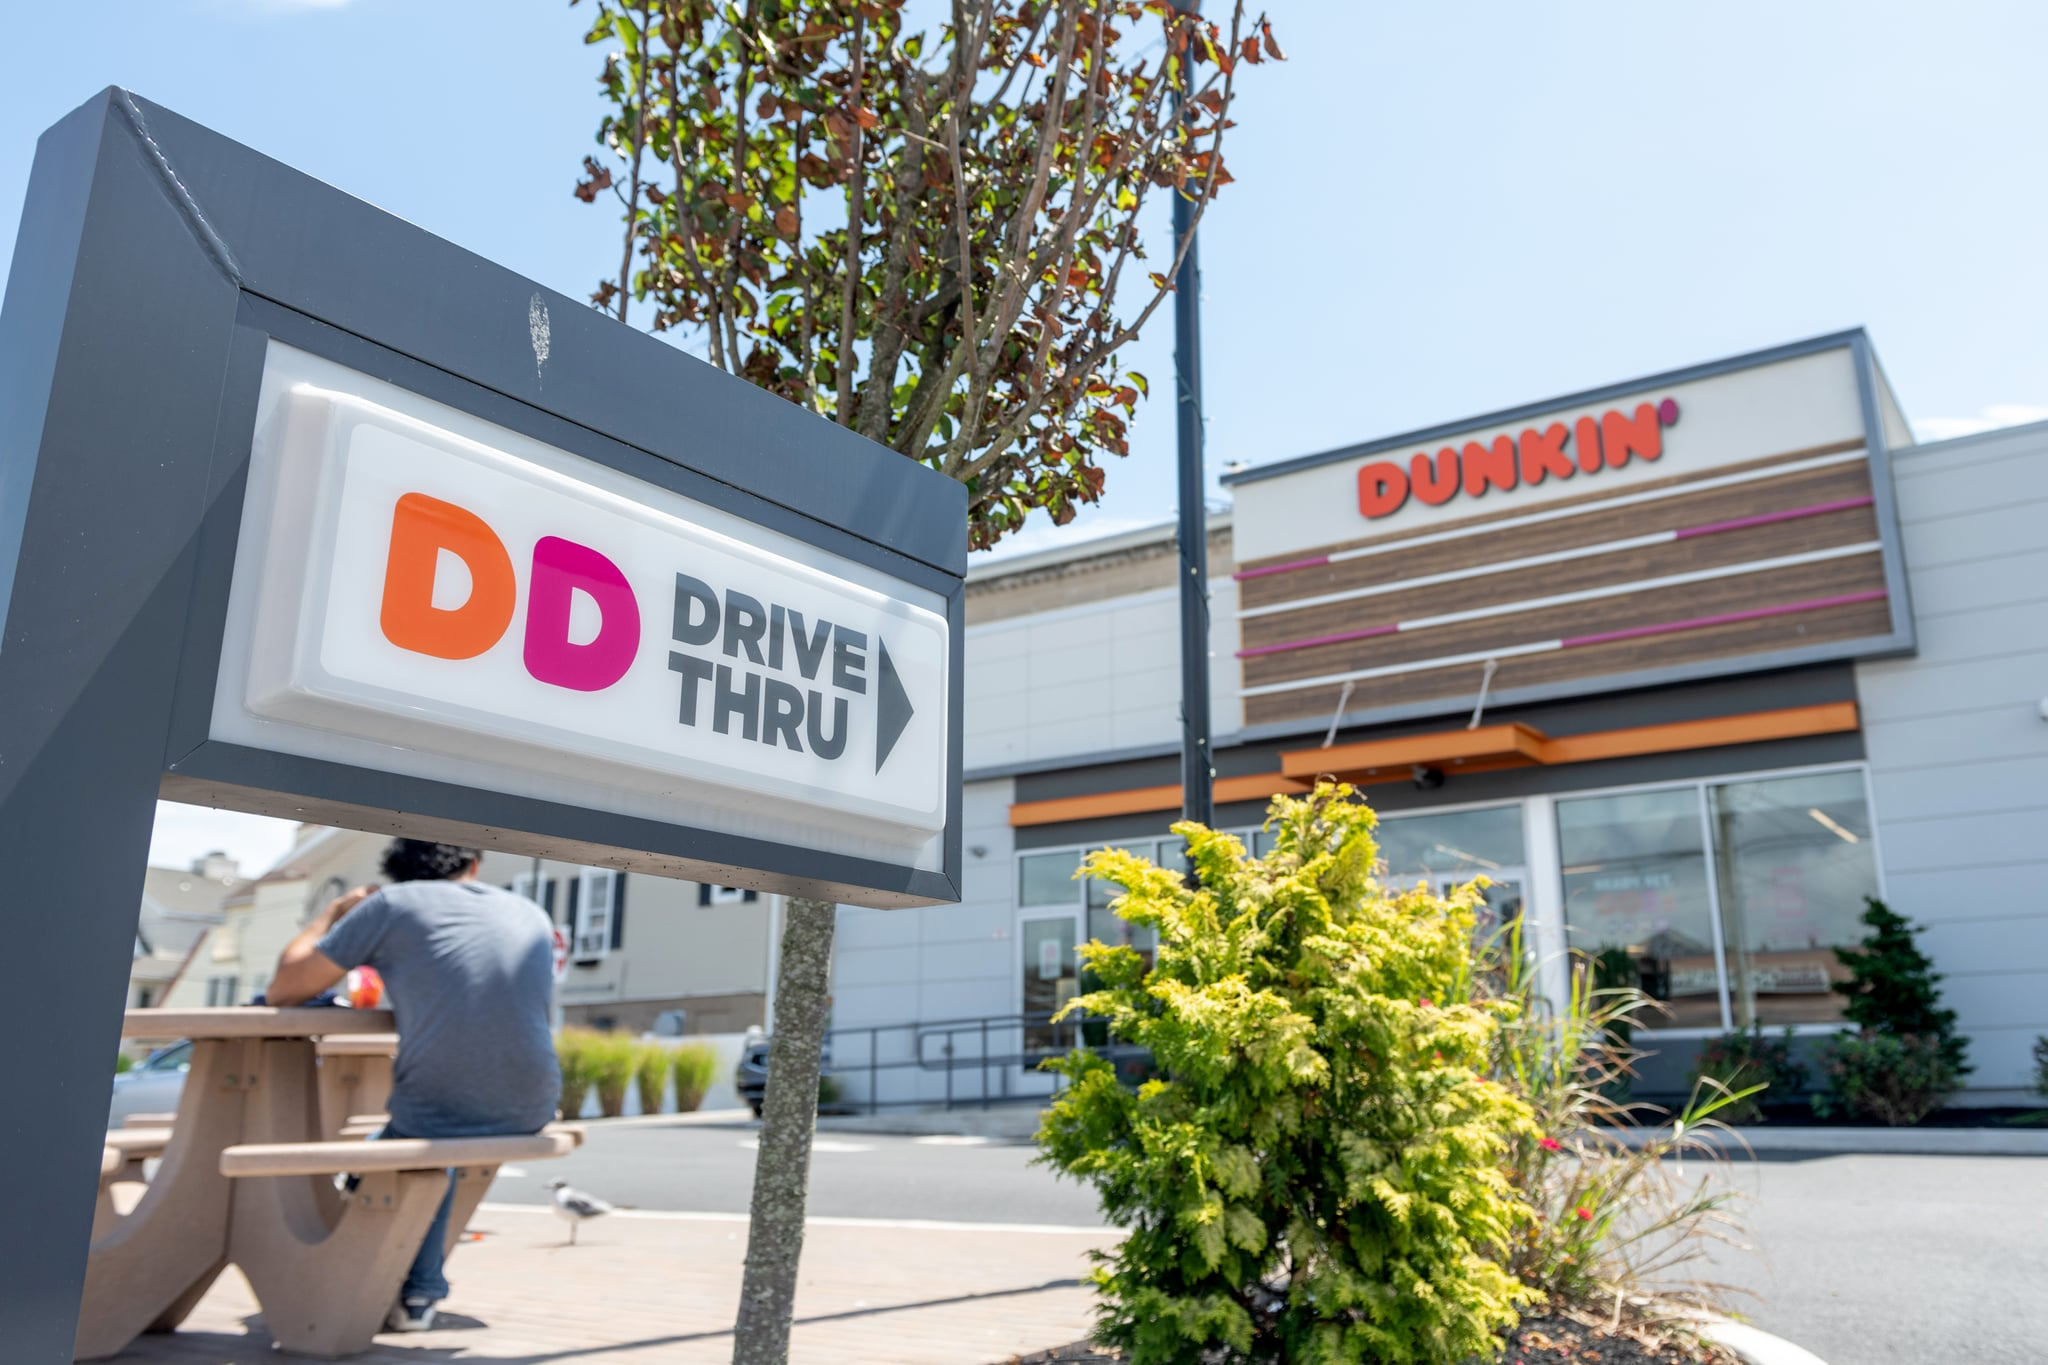 VENTNOR CITY, NEW JERSEY - AUGUST 14: A view of a Dunkin' Donuts drive through sign is seen as the state of New Jersey continues Stage 2 of re-opening following restrictions imposed to slow the spread of coronavirus on August 14, 2020 in Ventnor City, New Jersey. Stage 2, allows moderate-risk activities to resume which includes pools, youth day camps and certain sports practices.  (Photo by Alexi Rosenfeld/Getty Images)